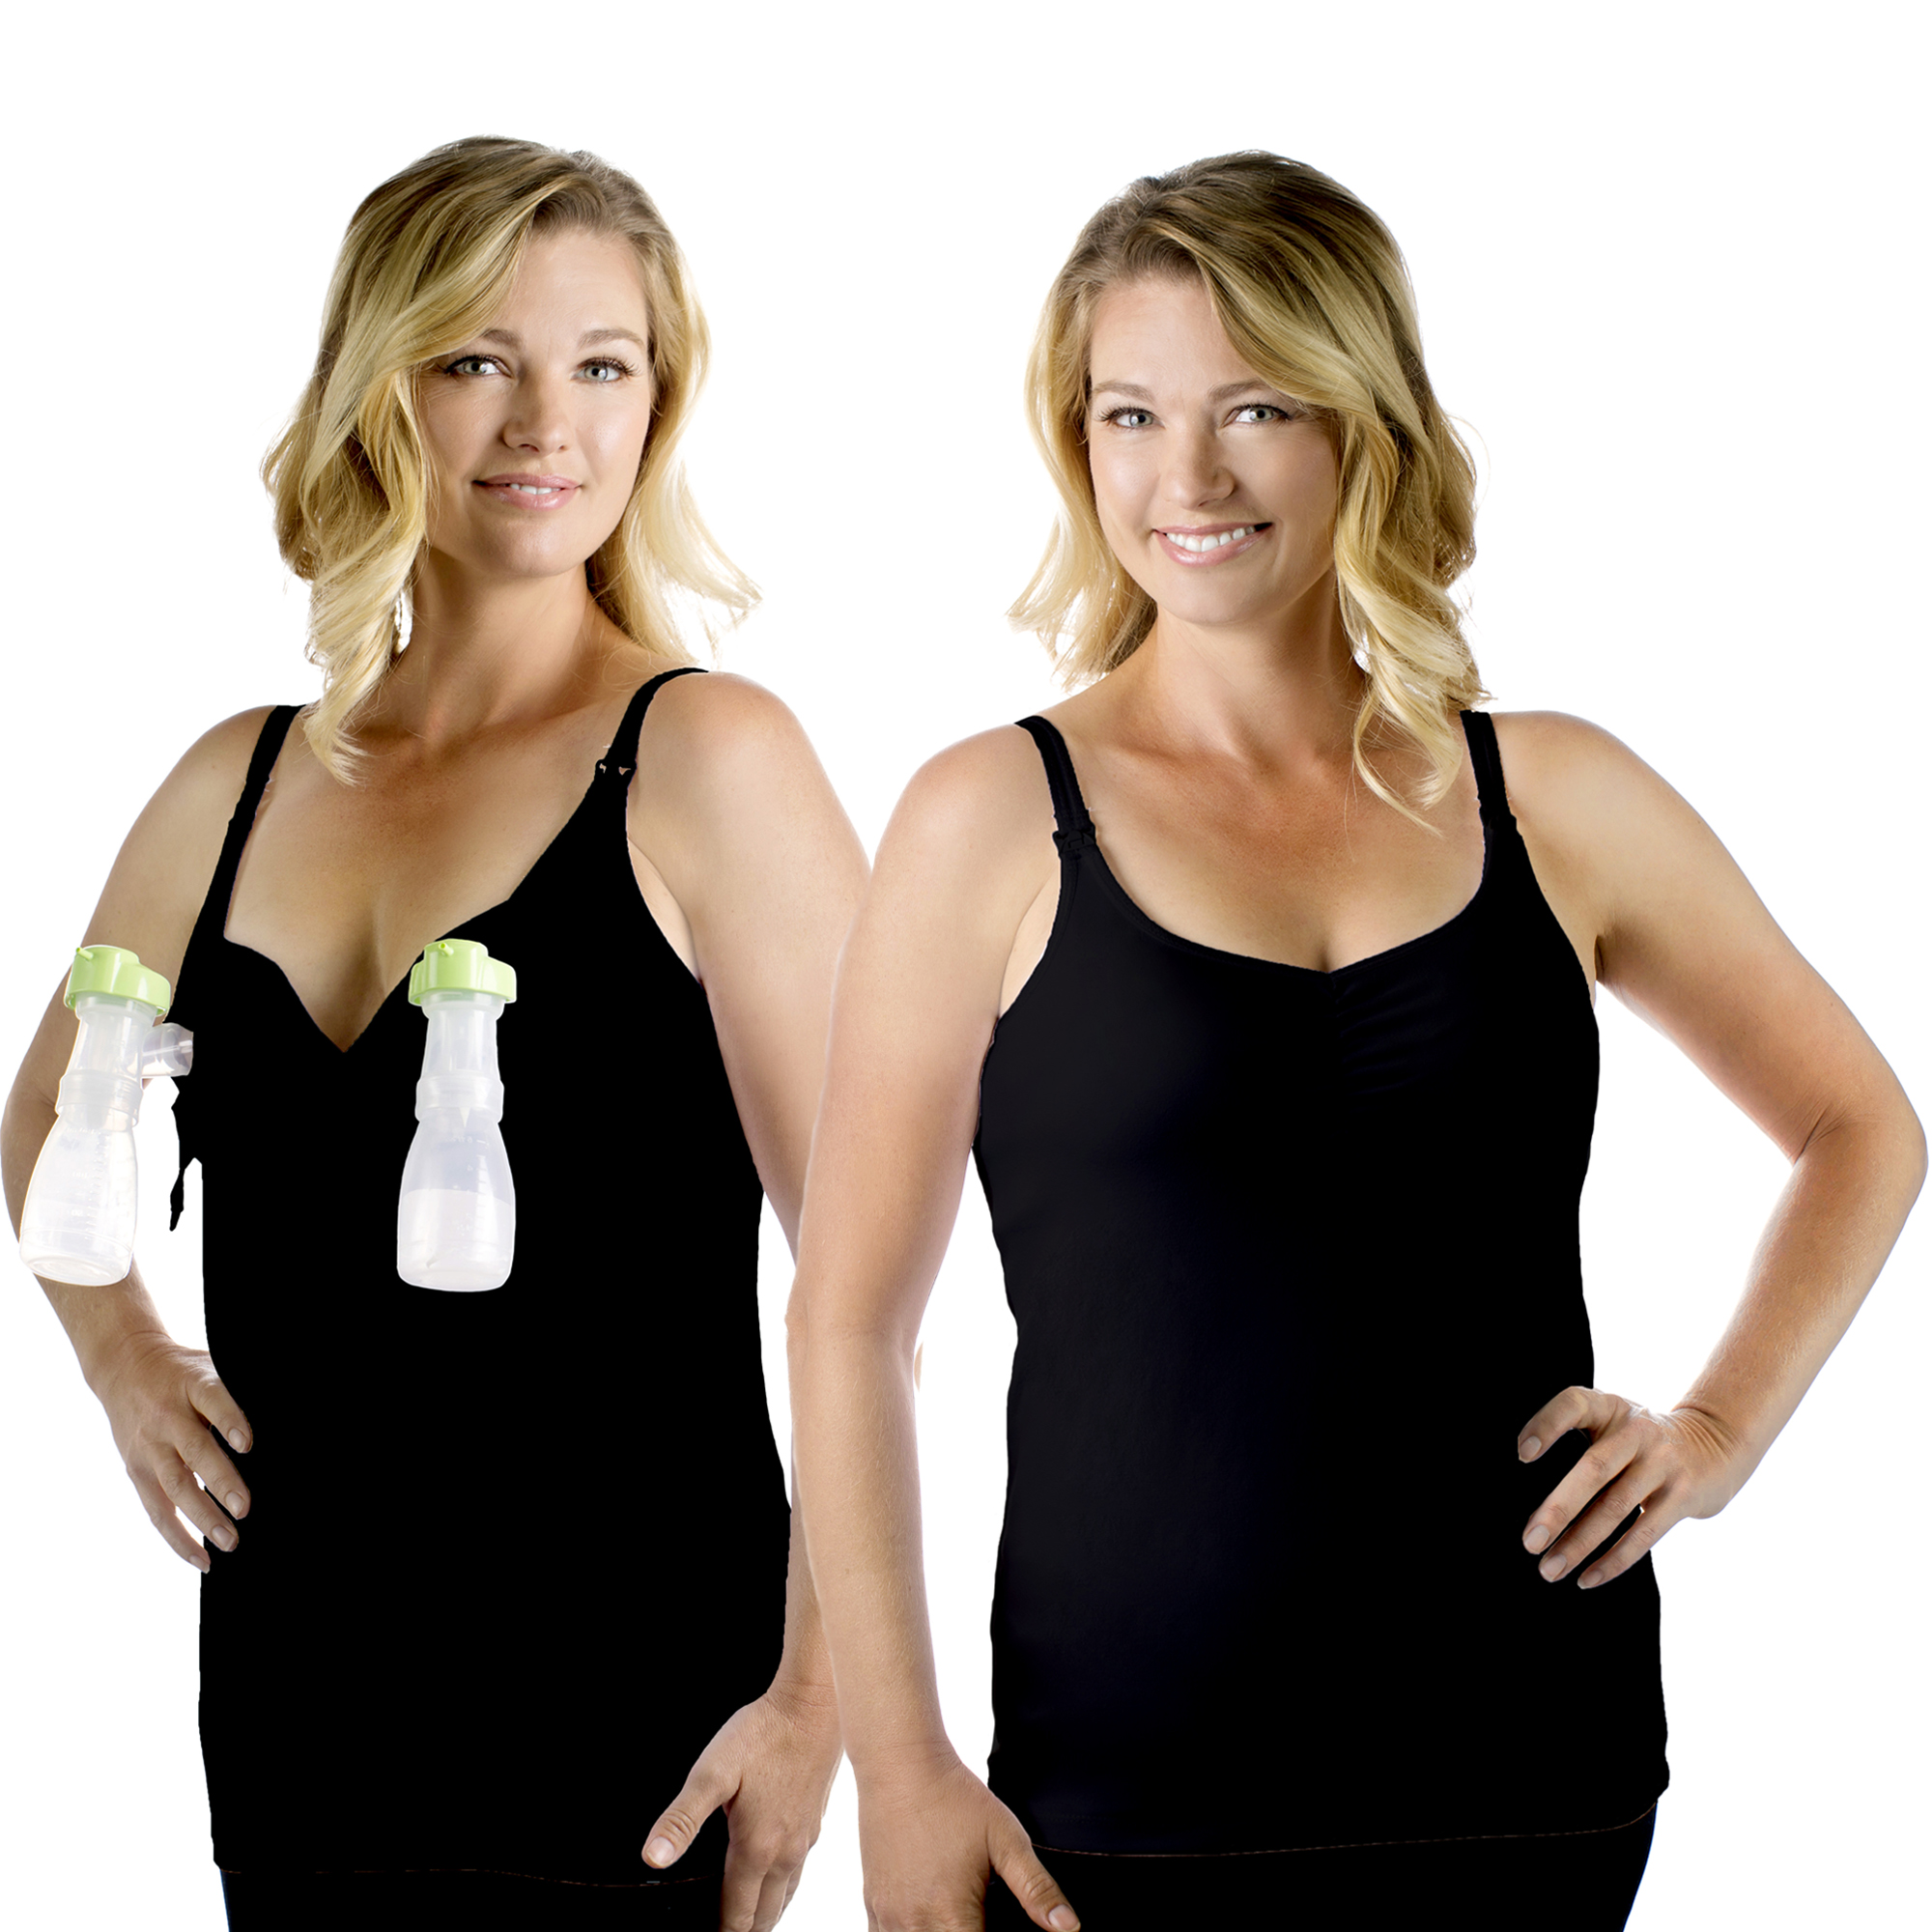 Rumina's Pump&Nurse Classic all-in-one Nursing Tank for maternity, nursing and built in hands-free pumping bra